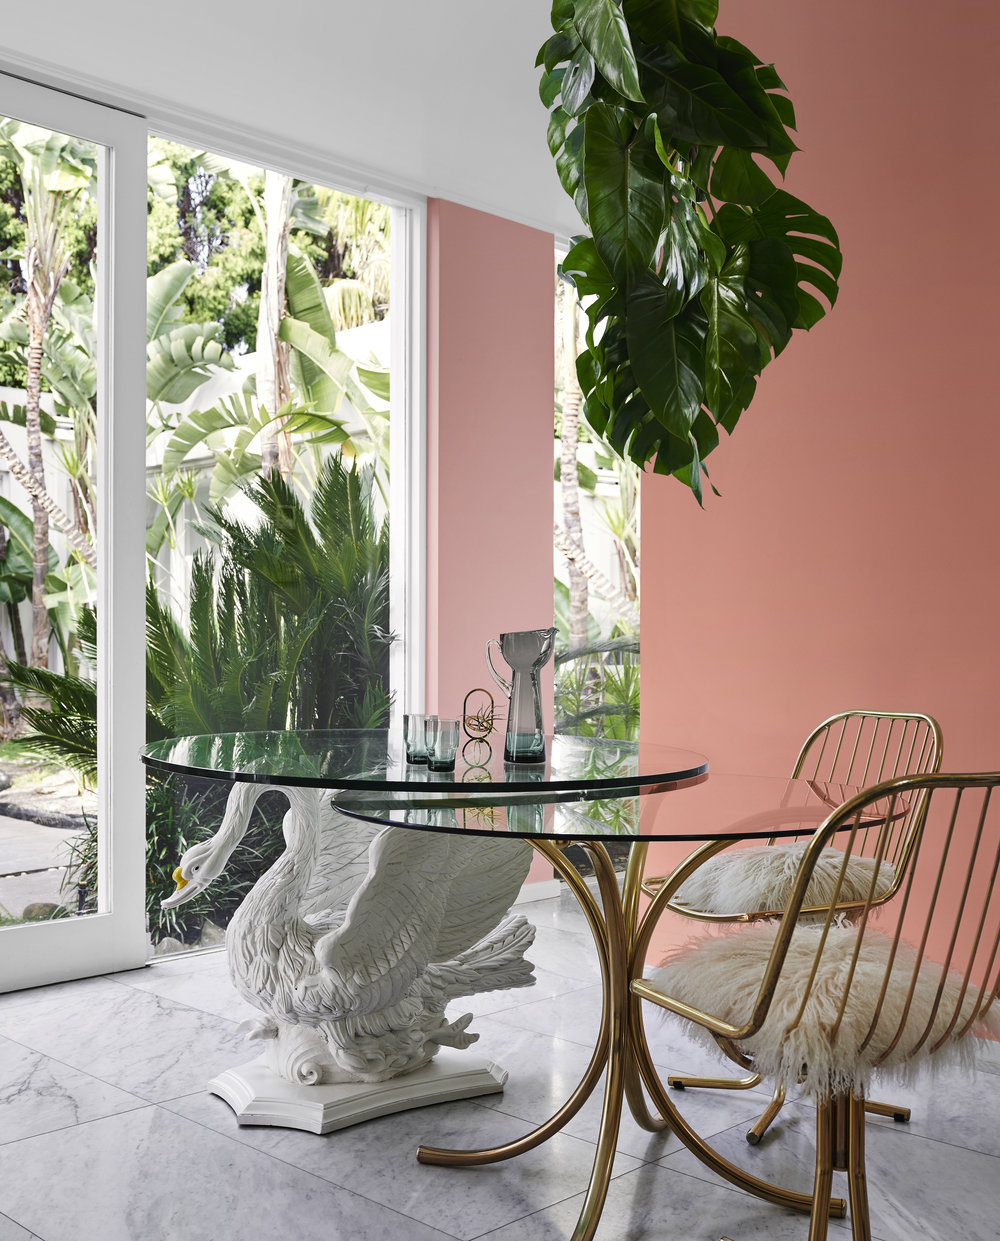 Dulux Colour Trends 2018  -Escapade Palette.Right wall in Dulux Cuticle Pink and Main wall in Dulux Tangerine Flake.